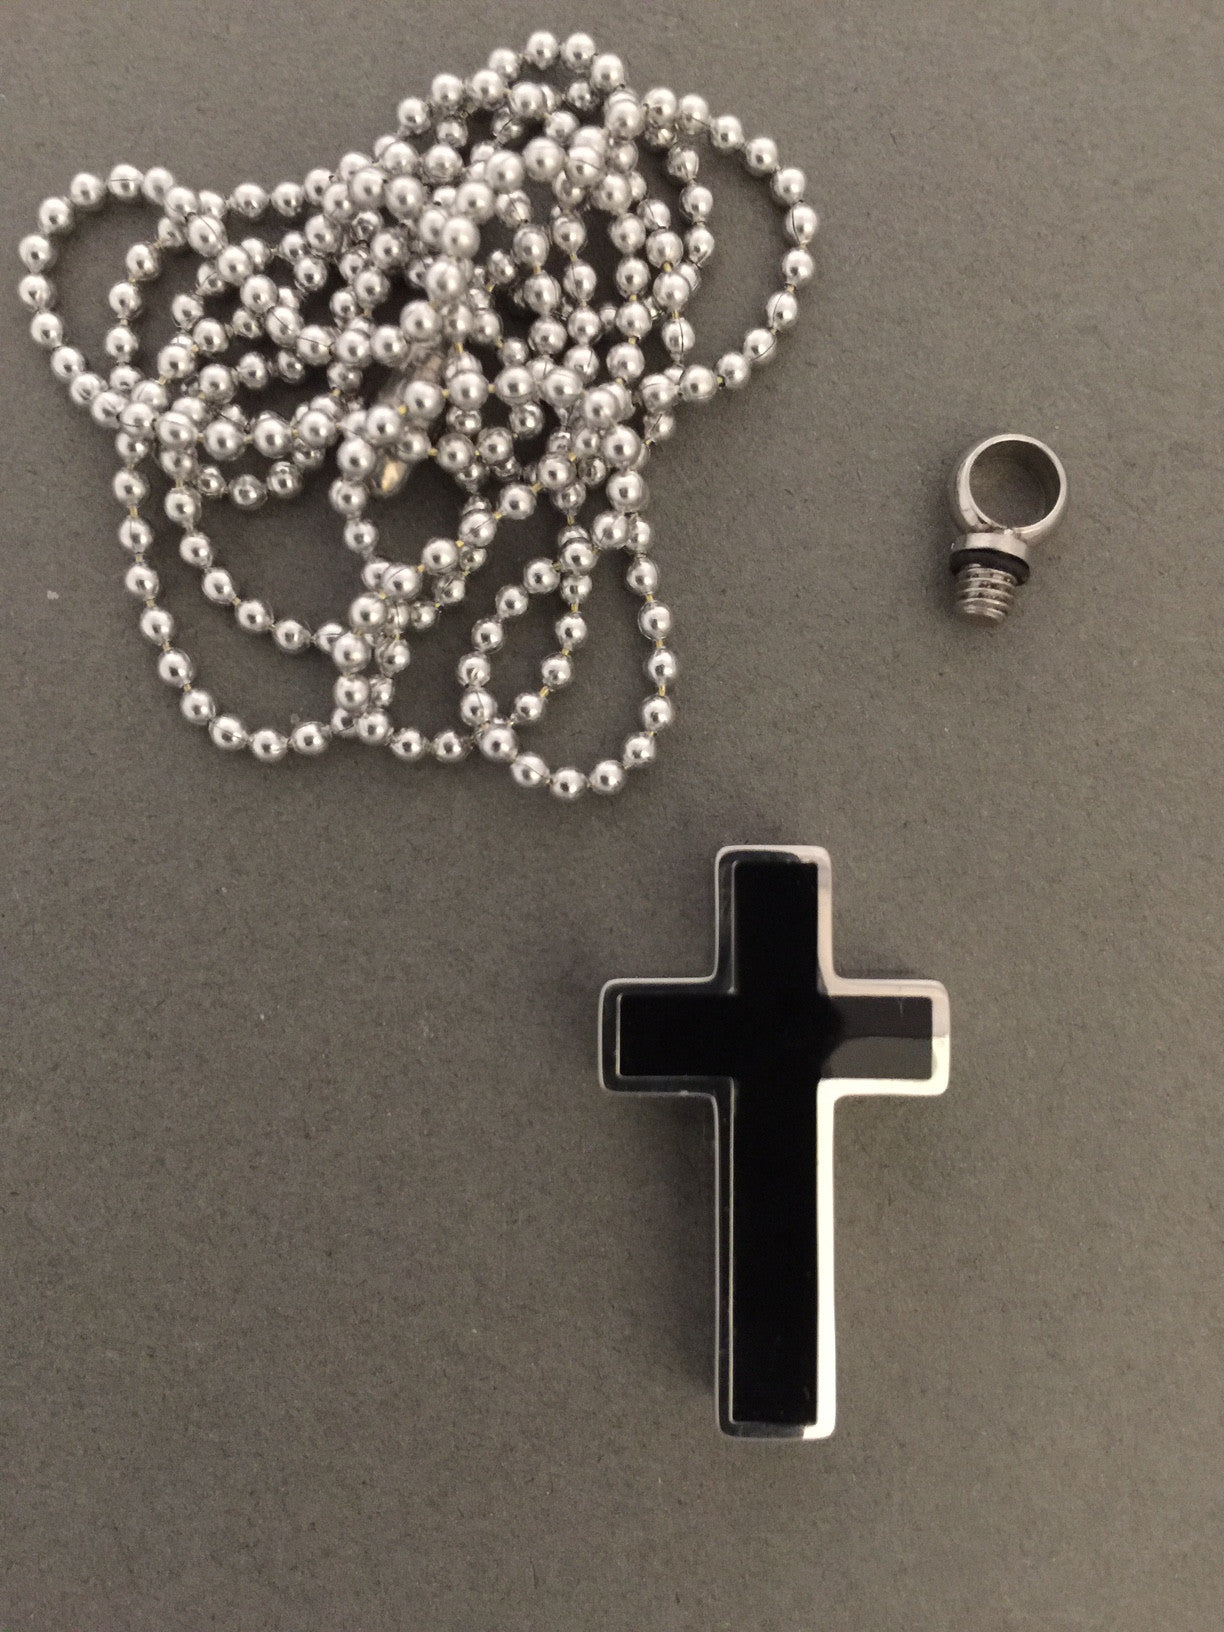 Black Memorial Ashes Urn Cross Necklace Pendant W Chain